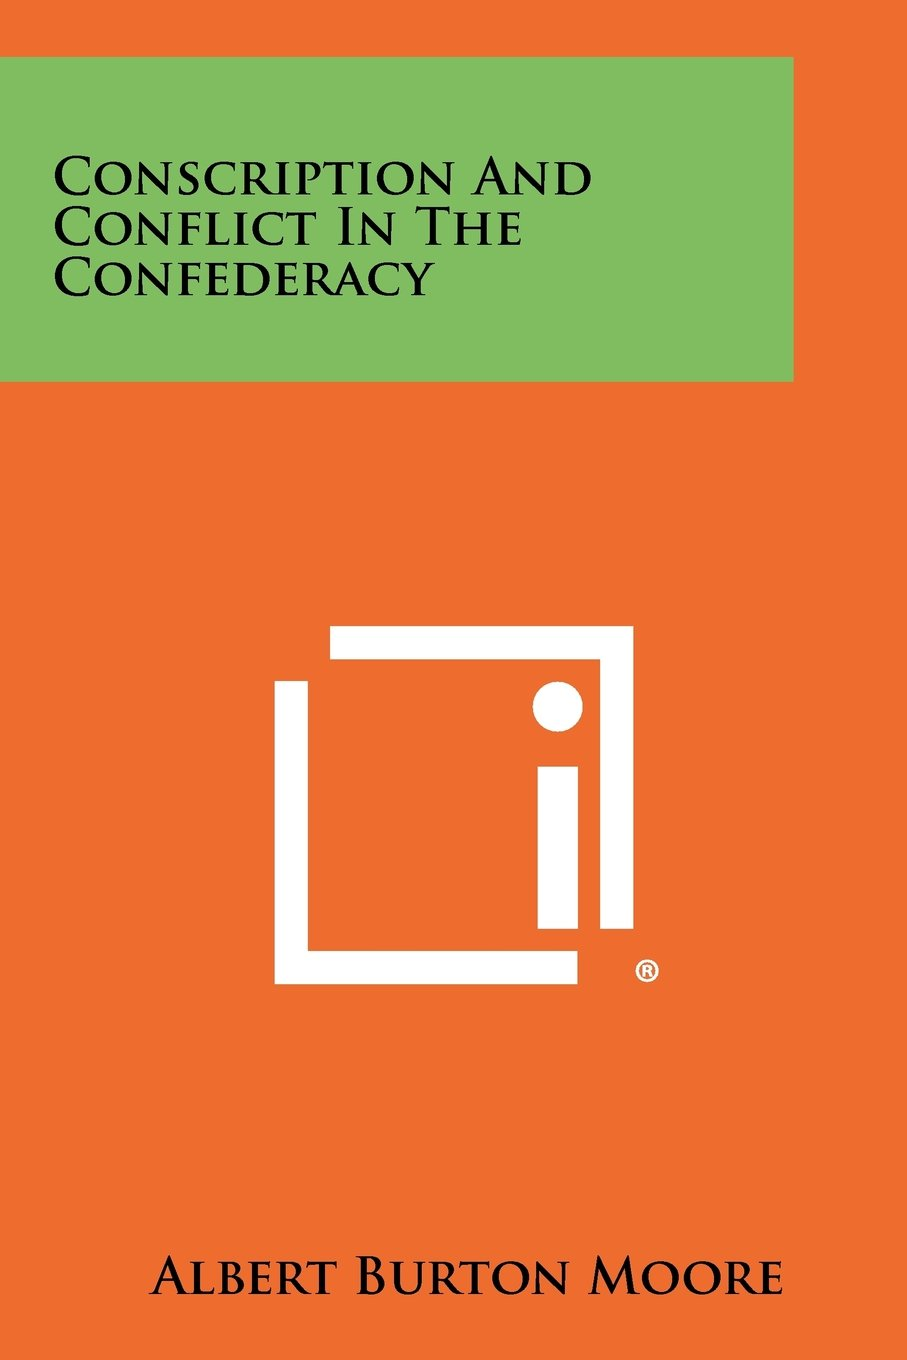 conscription and conflict in the confederacy albert burton moore conscription and conflict in the confederacy albert burton moore 9781258384845 com books